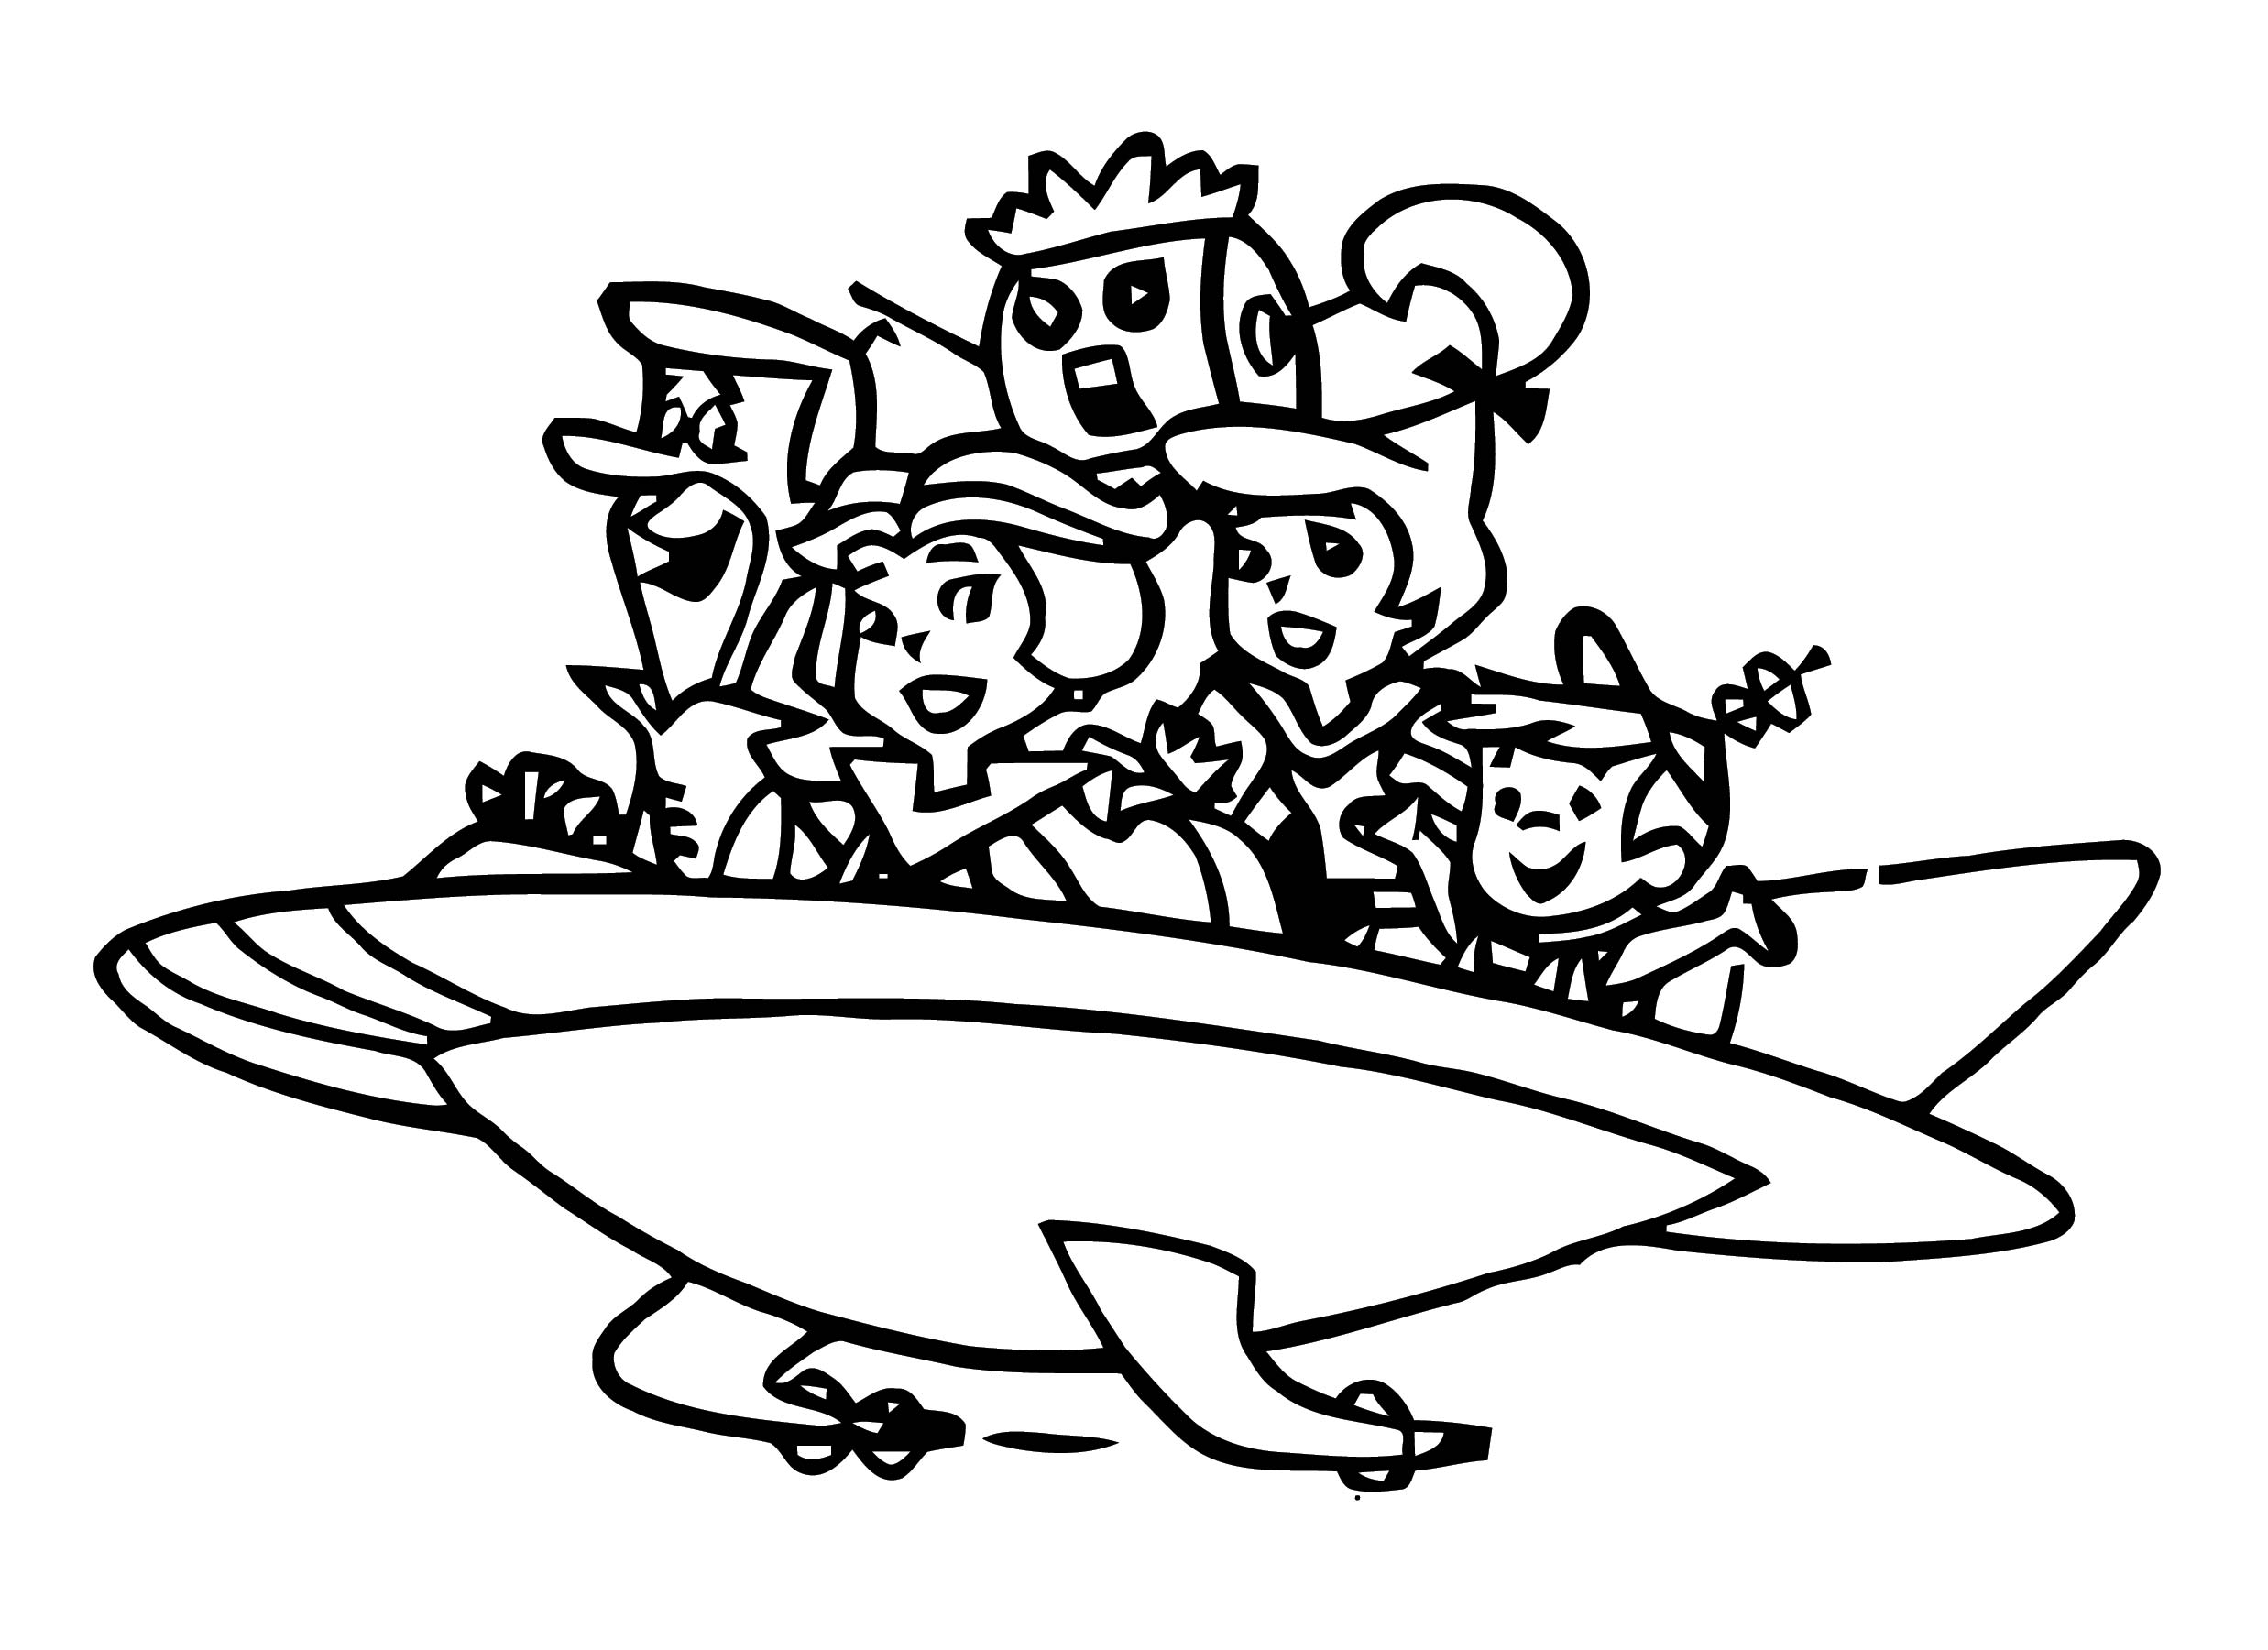 Hot Wheels Jetsons Capsule Car Coloring Page Wecoloringpage Com